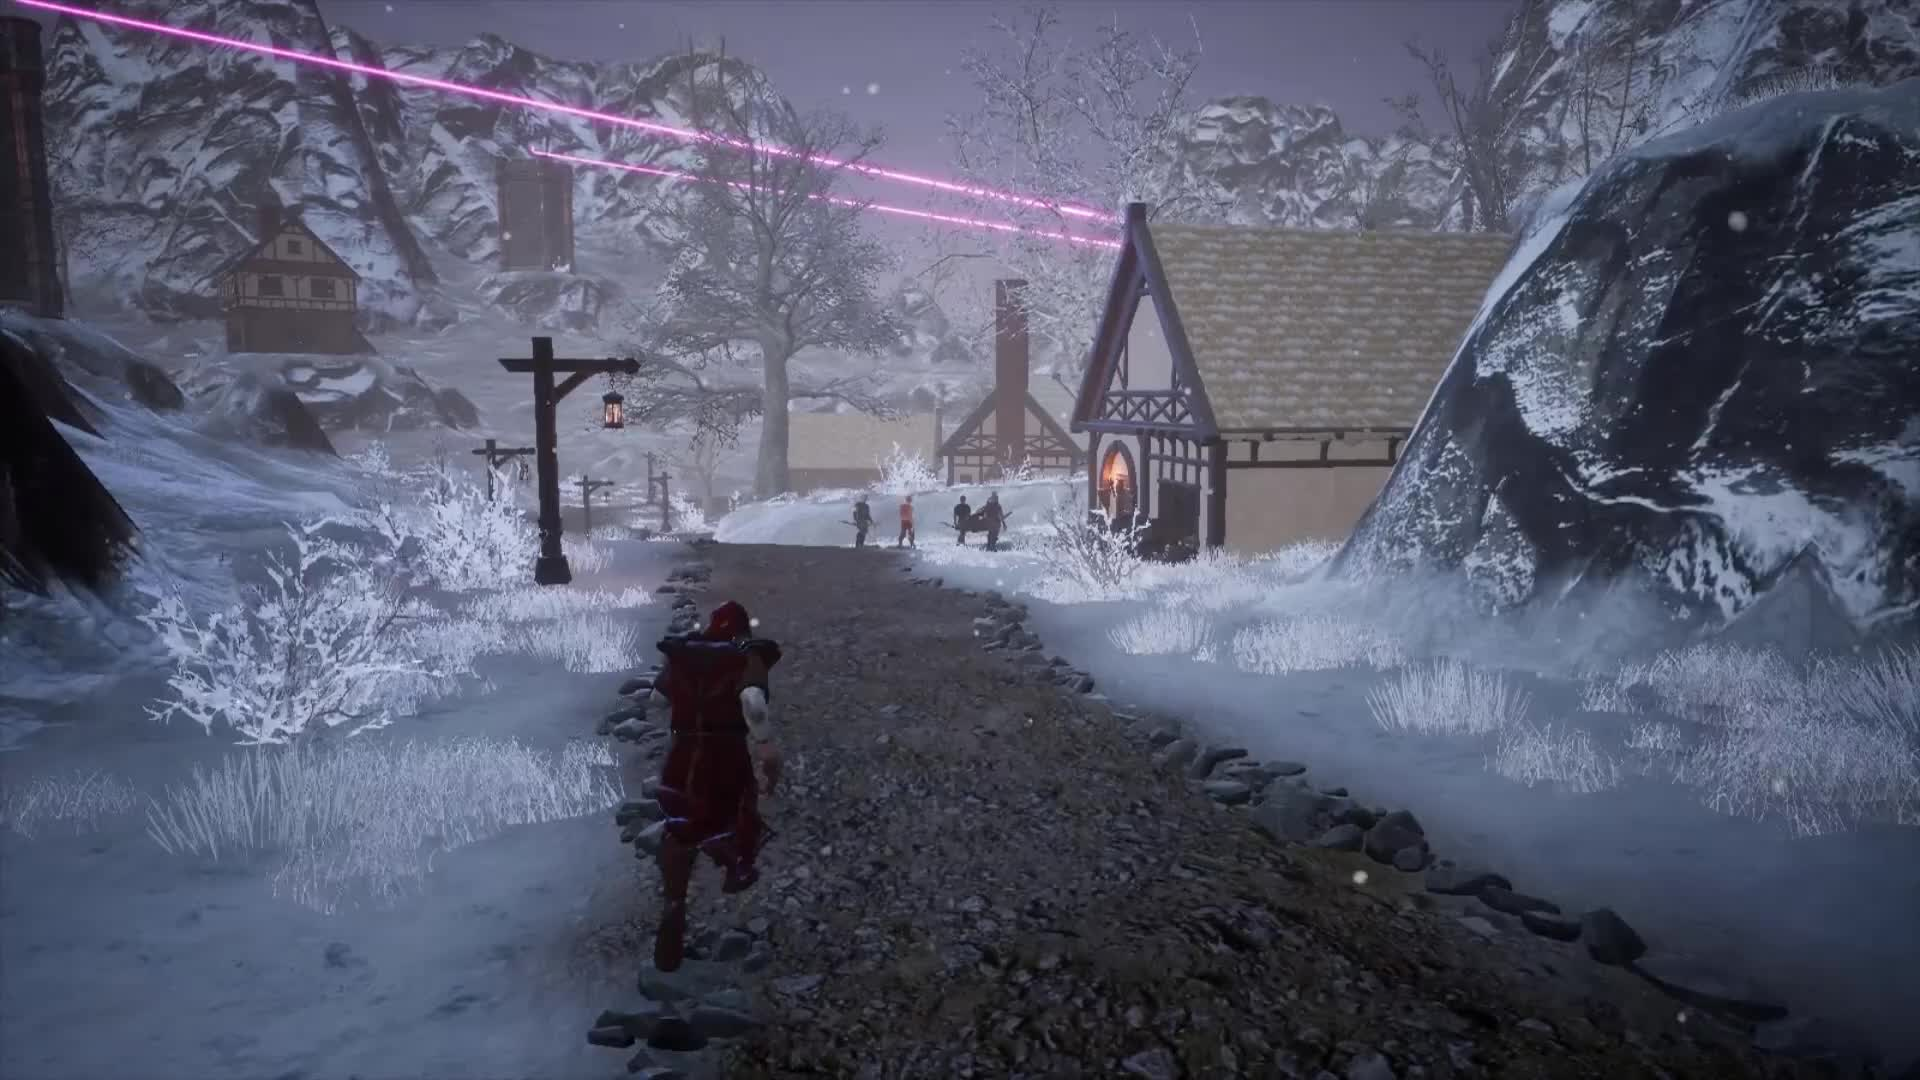 Fictorum, gamephysics, games, gaming, Who says mages need to keep their distance? GIFs